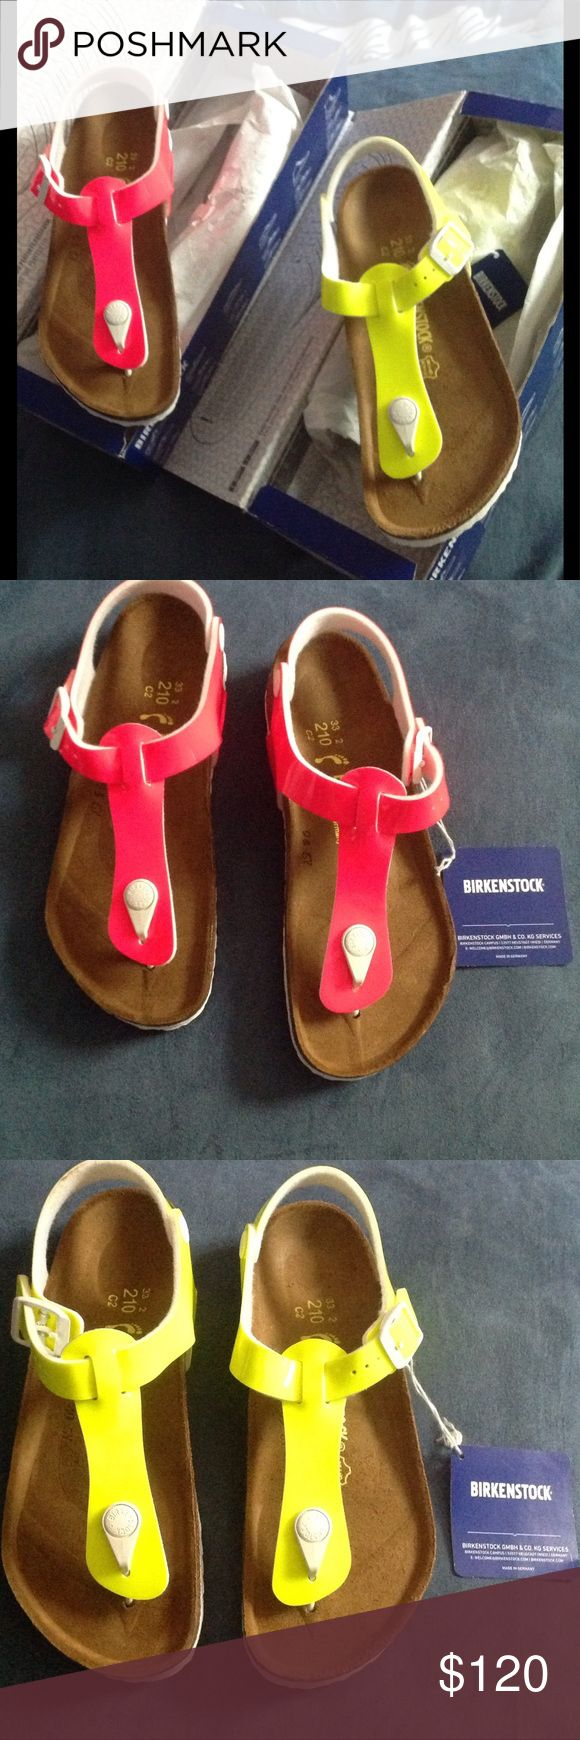 Kids Birkenstocks (2 Pairs) SUPER CUTE Kids Birkenstocks in the style kairo.... Bought these for my god daughter but they didn't fit her and I don't remember where I put the receipt. These are completely new and both are the same size. Payed about 83 for each pair with tax. Listing is for both pairs. NO TRADES. Sandals each come with their boxes (: make me a reasonable offer, we can maybe come to an agreement (: Birkenstock Shoes Sandals & Flip Flops